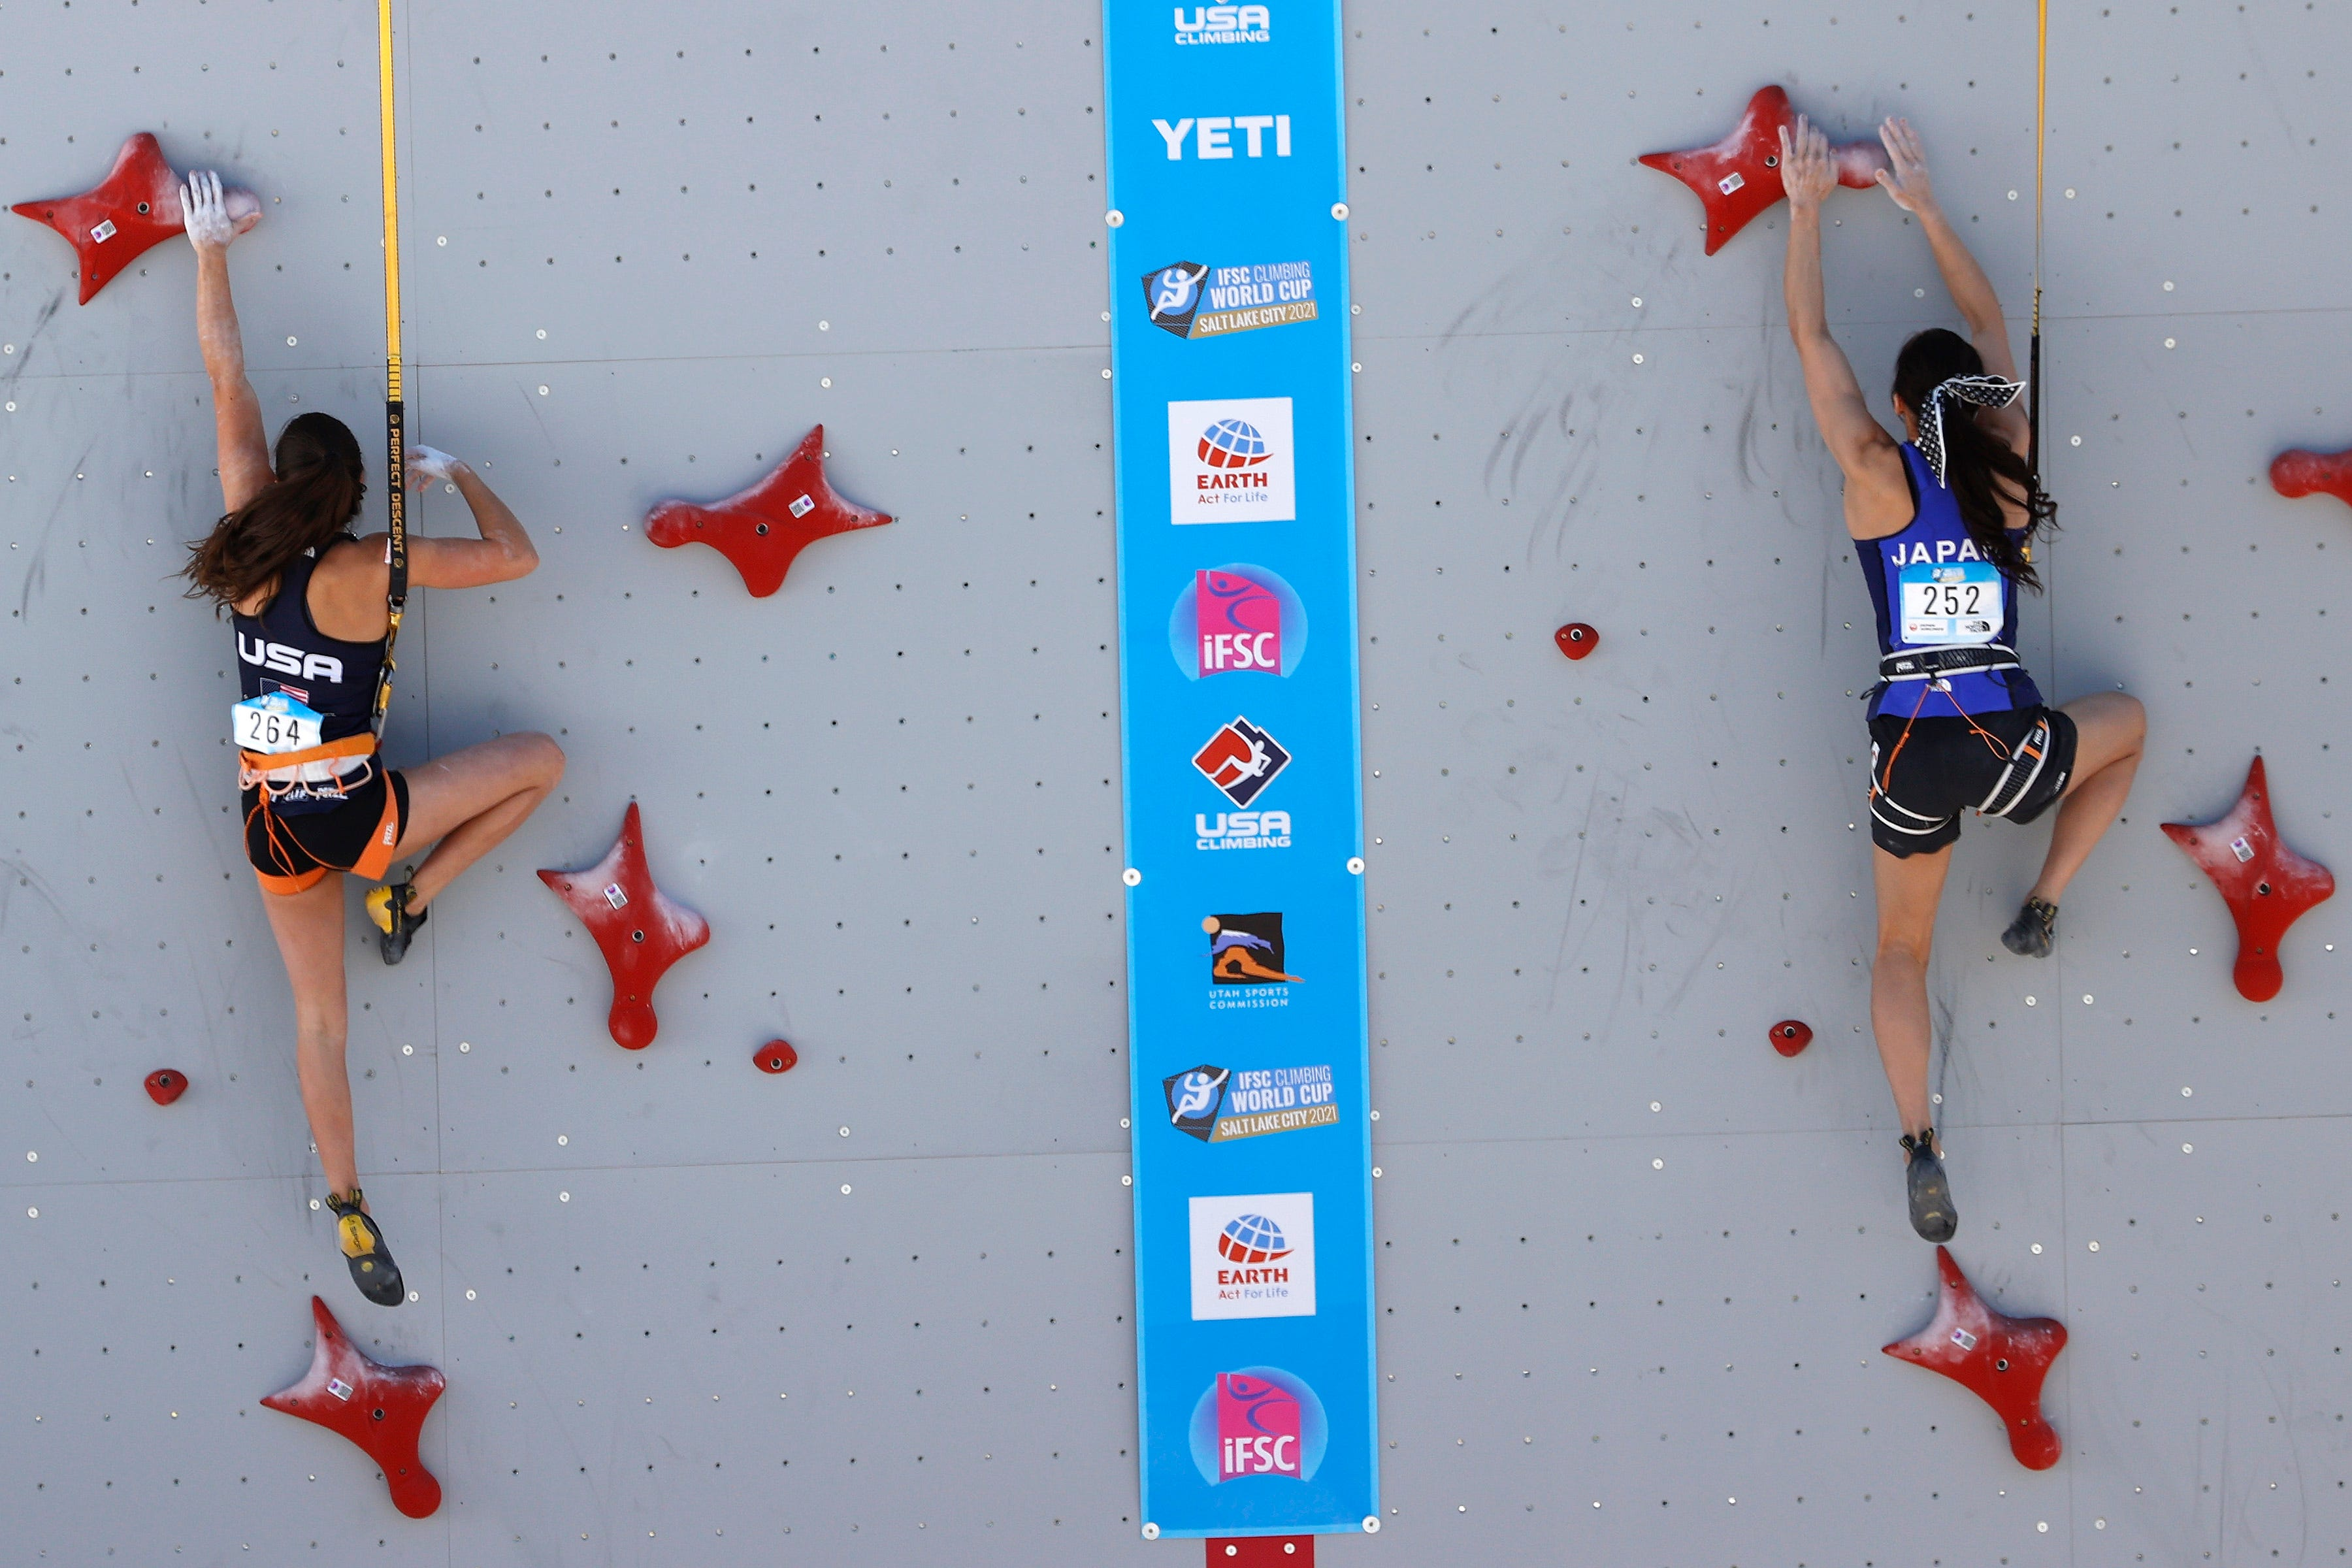 Sport climbing makes Olympic debut: What to know about scoring, routes